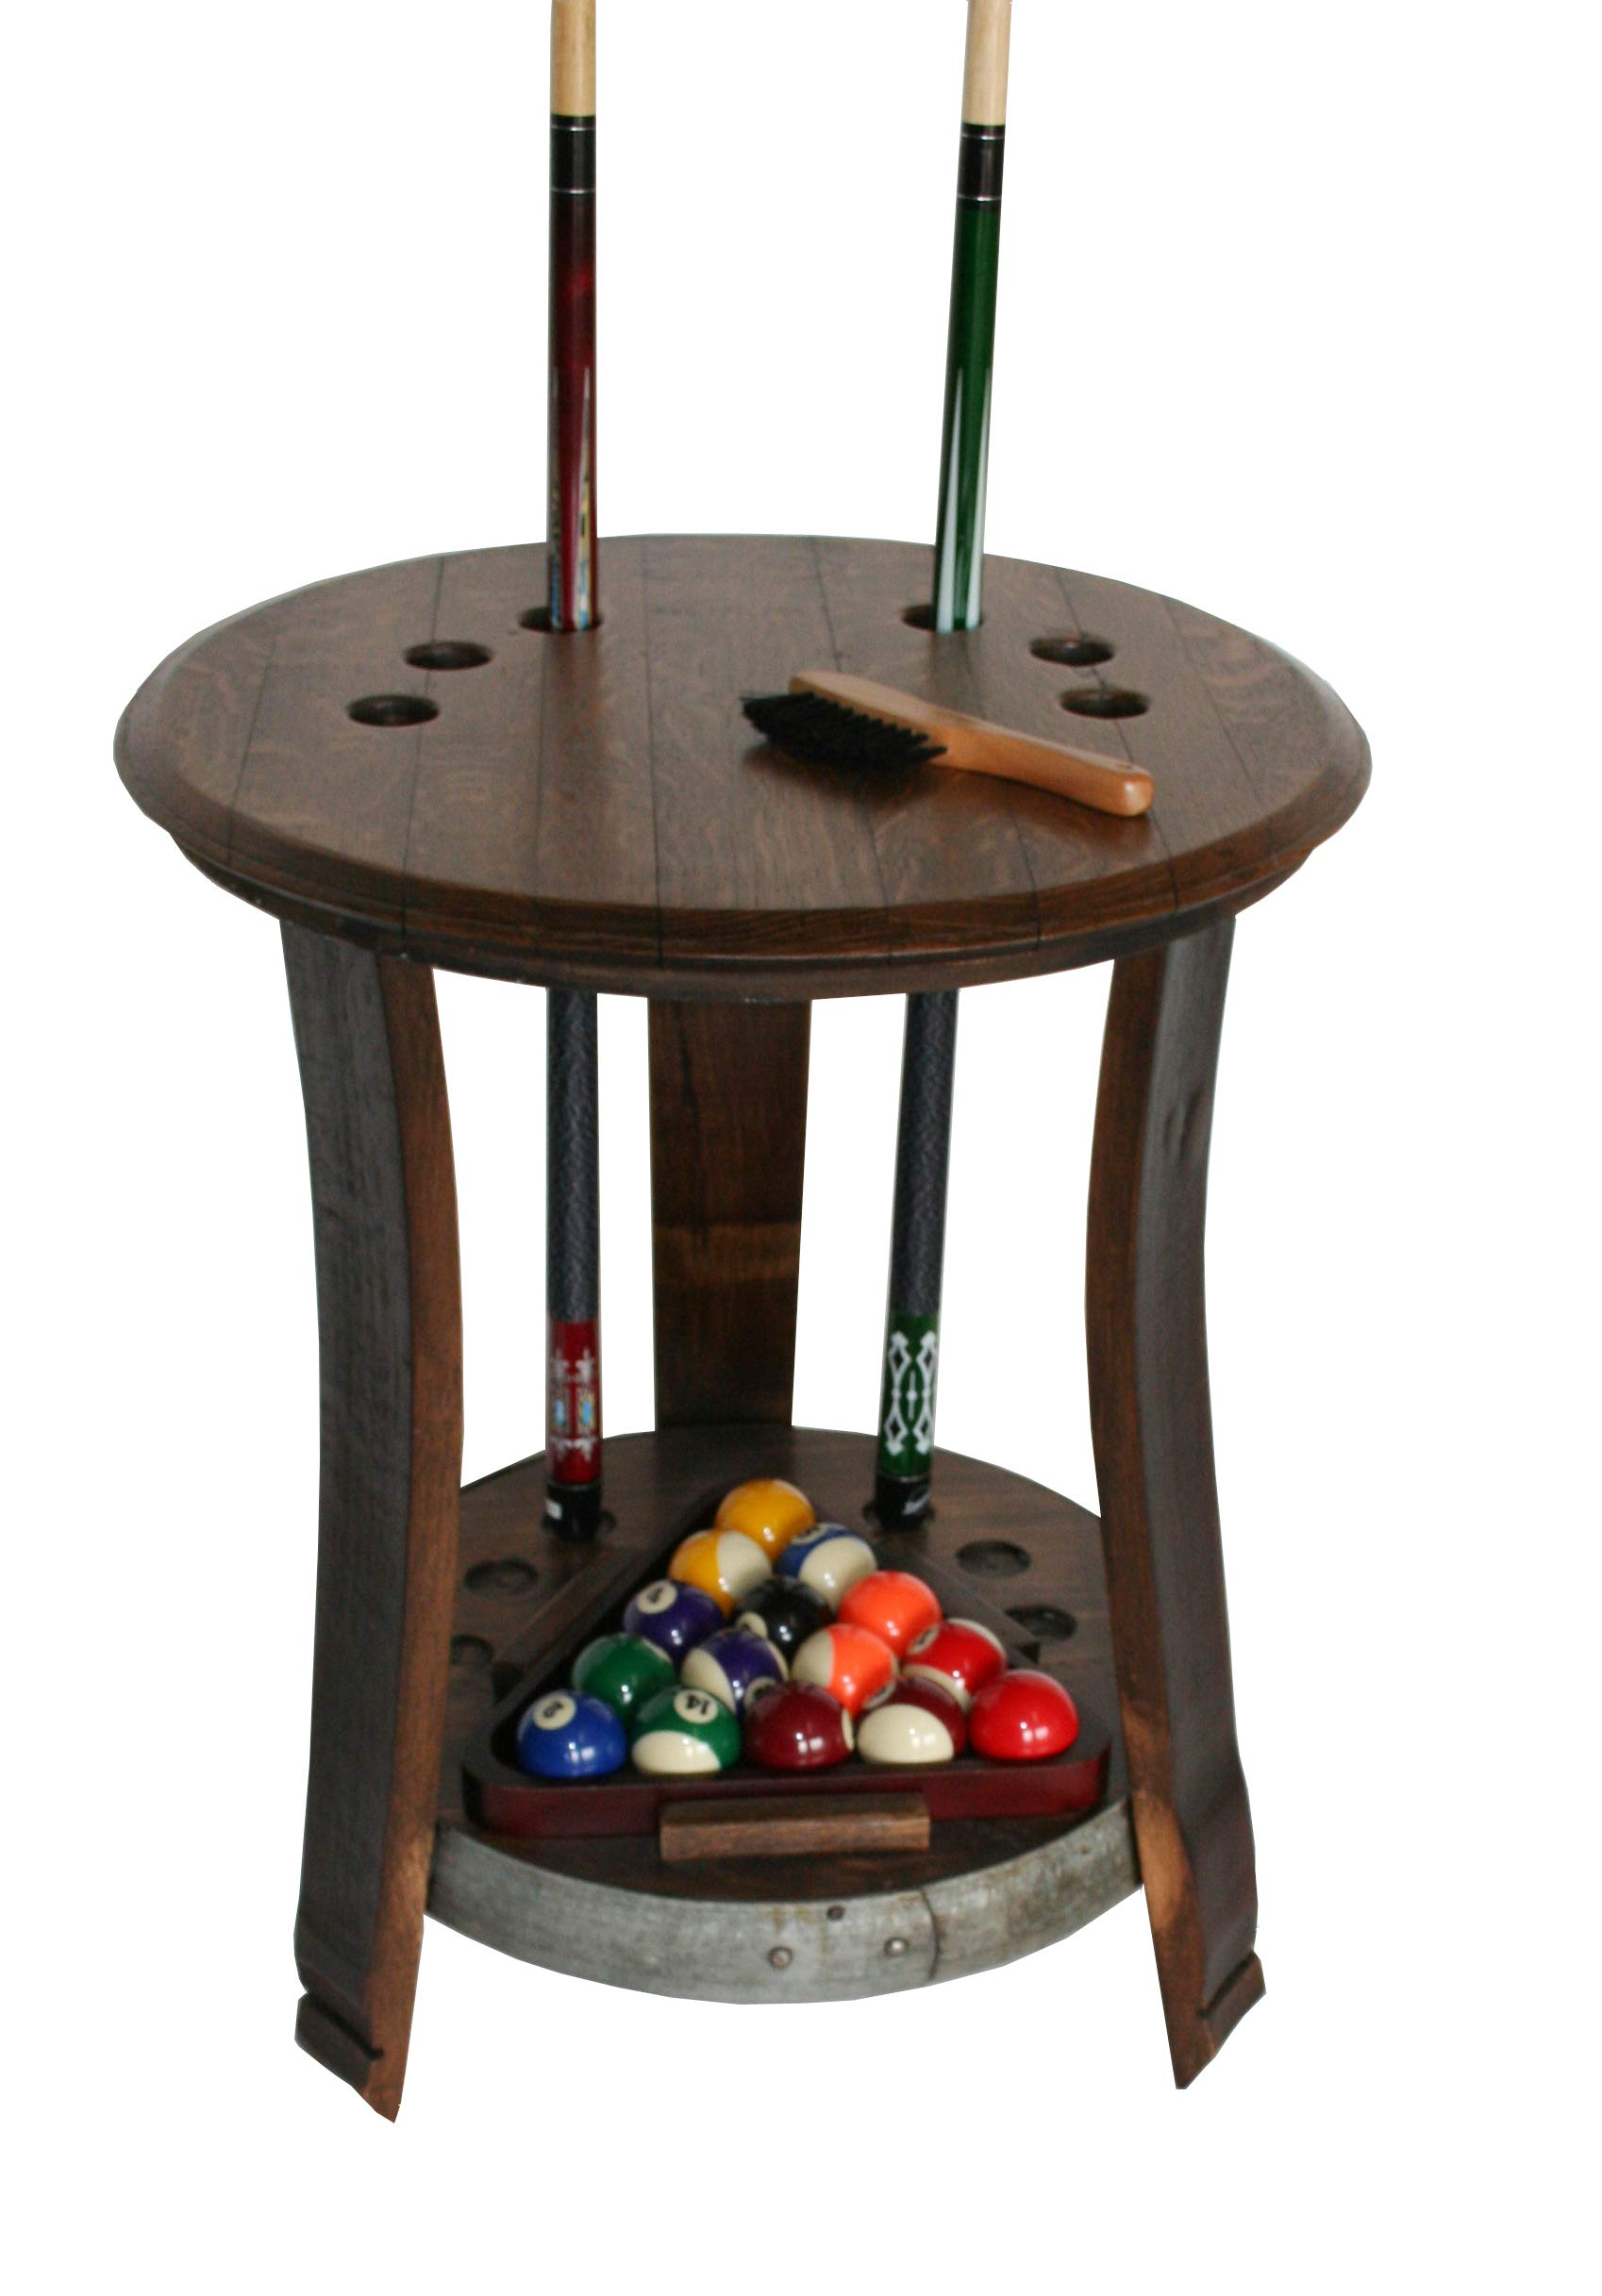 In the Garden and More Reclaimed Wine Barrel Head Pool Cue Rack Table